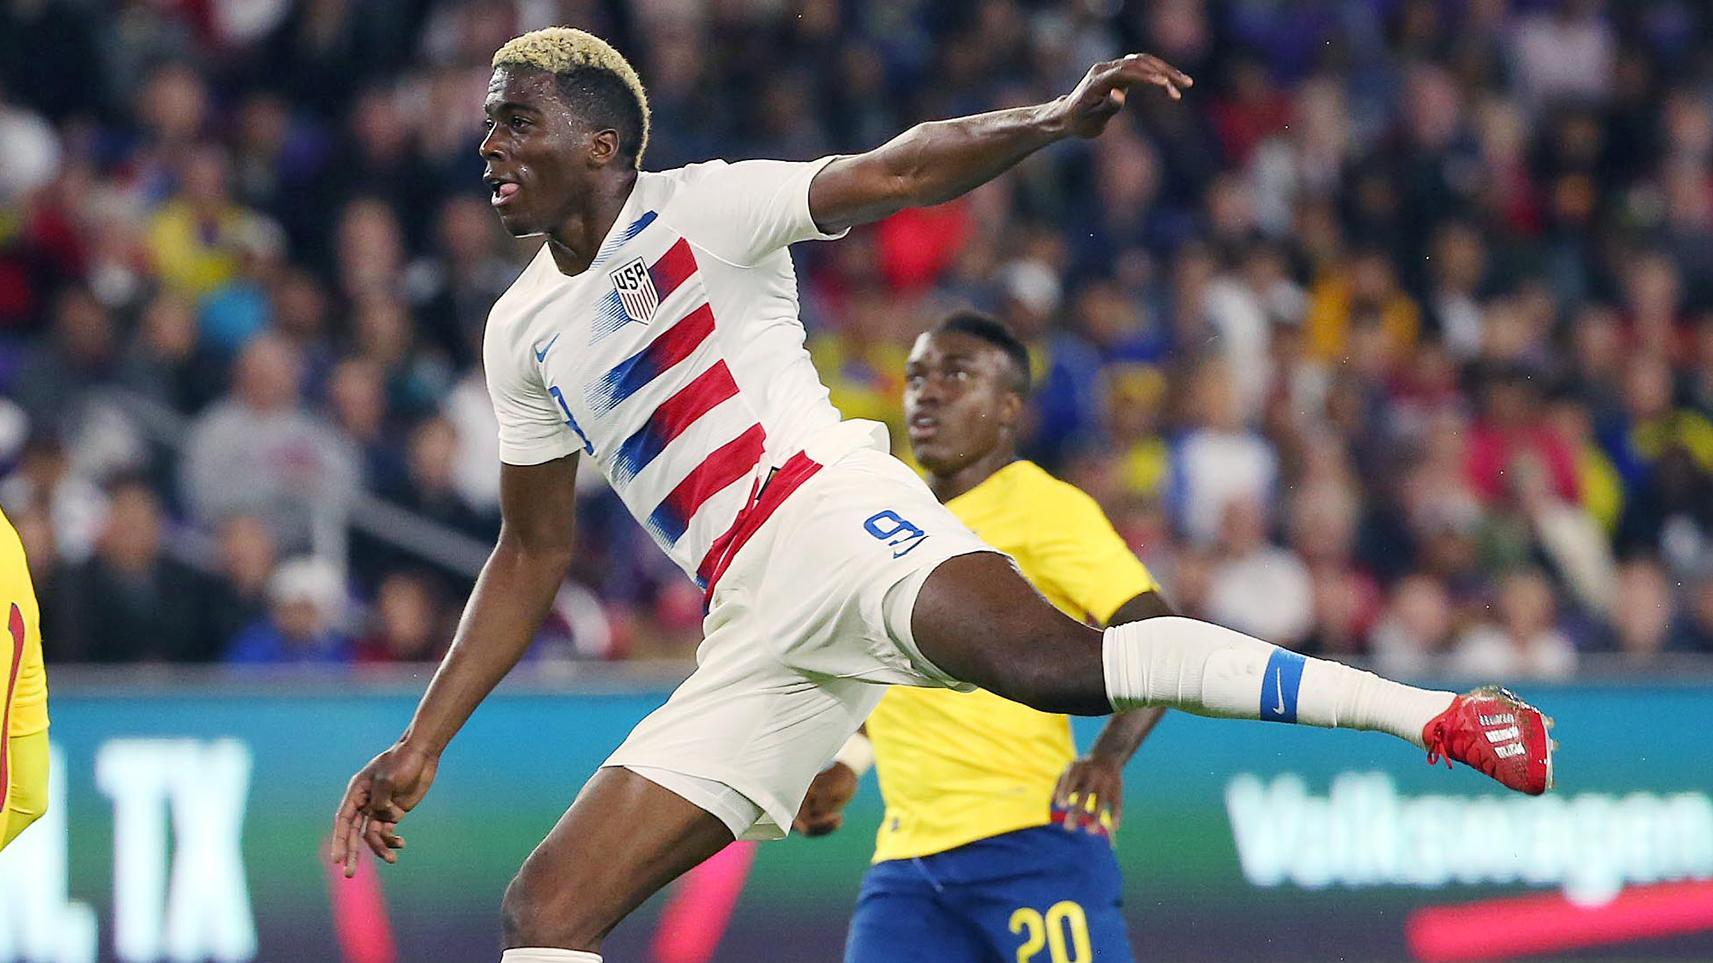 Zardes' deflected shot puts the U.S. in front